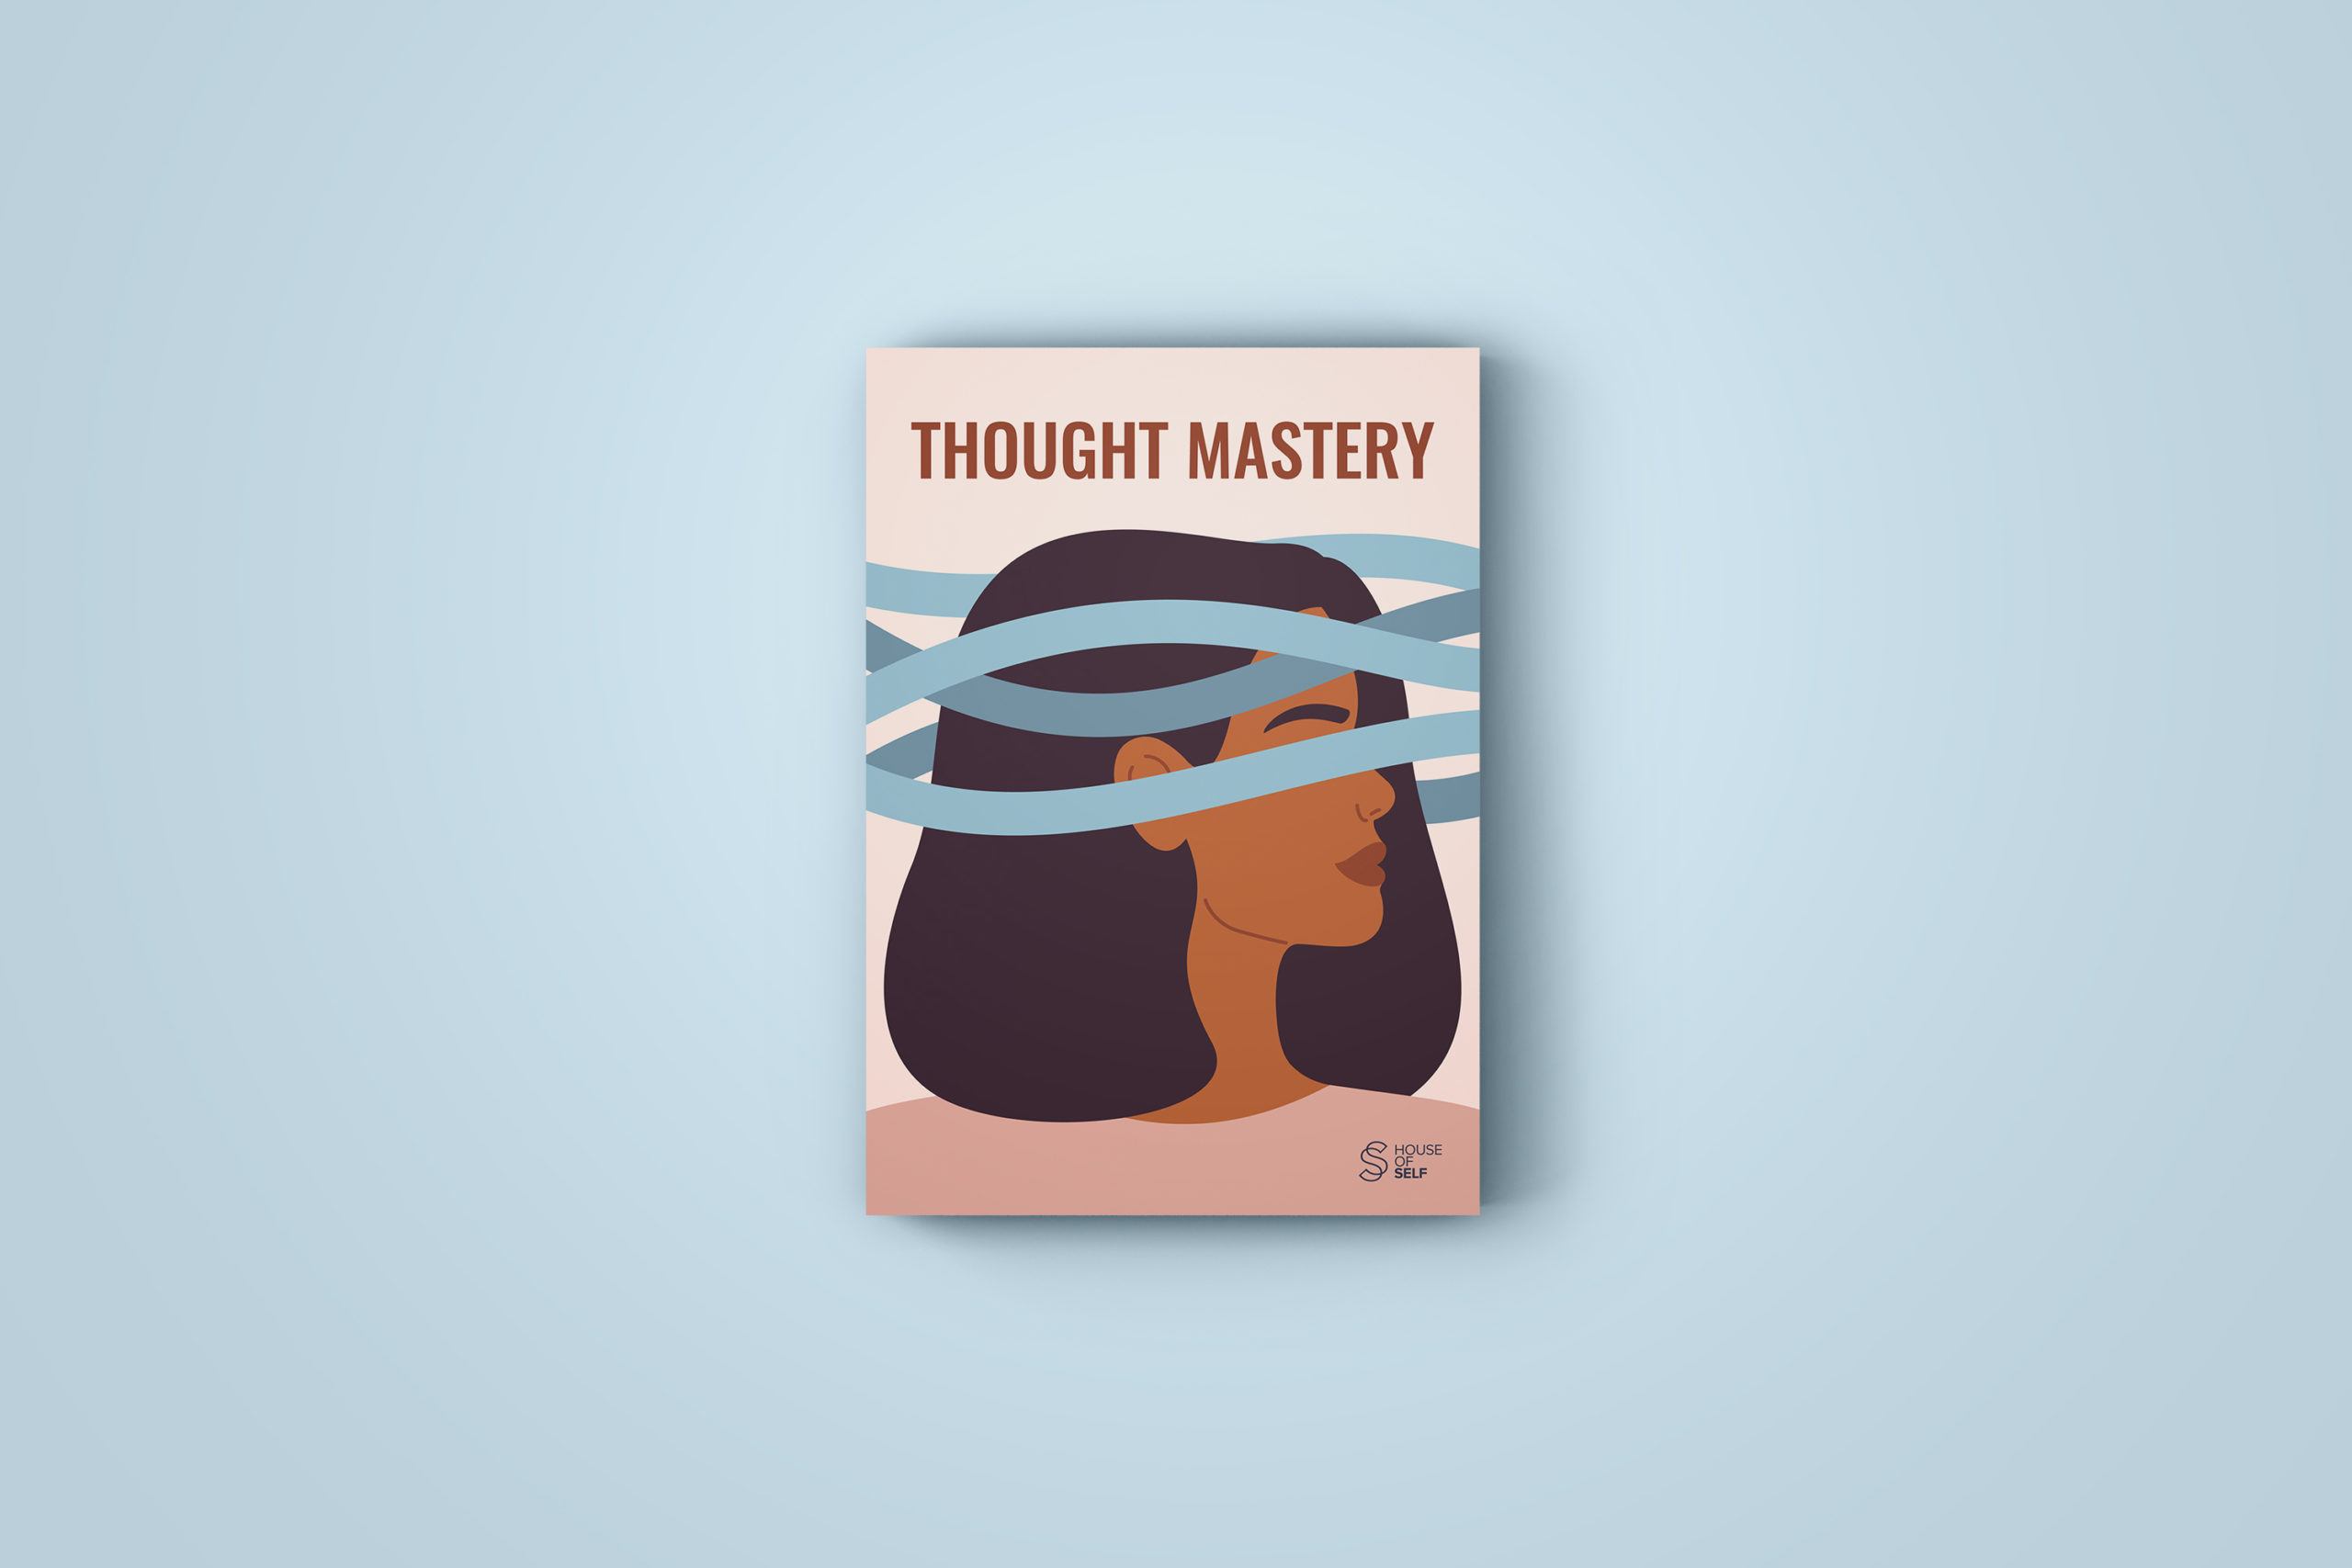 Thought Mastery